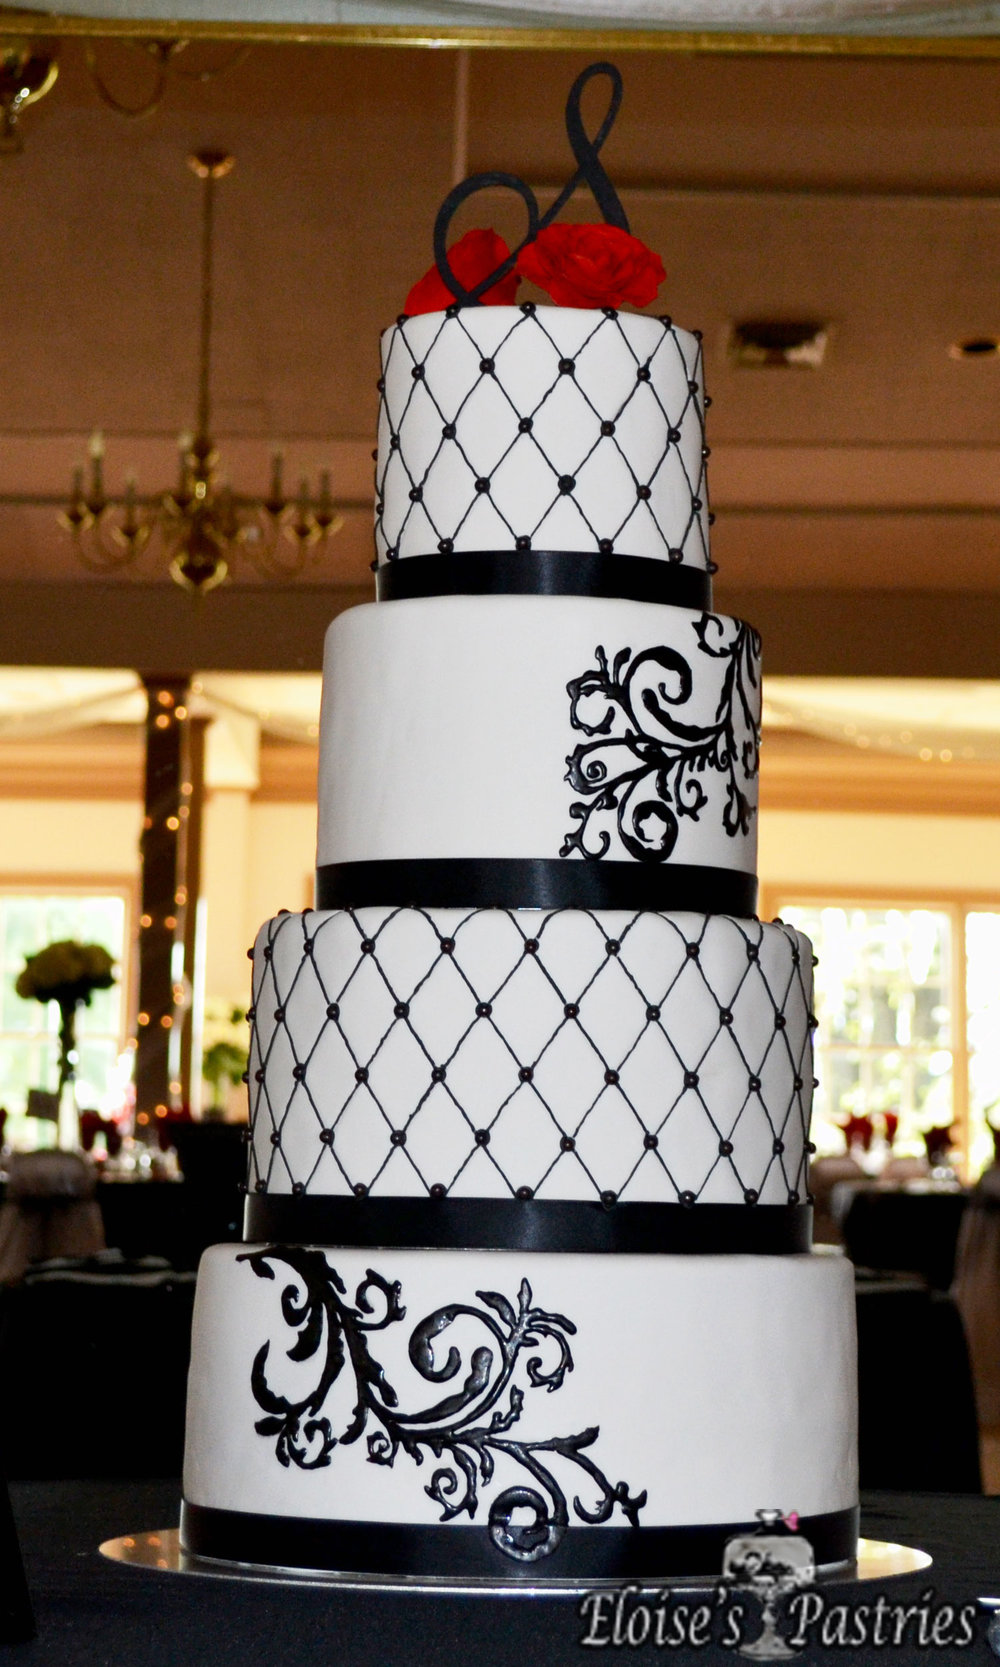 White & Black Intricate Design Wedding Cake